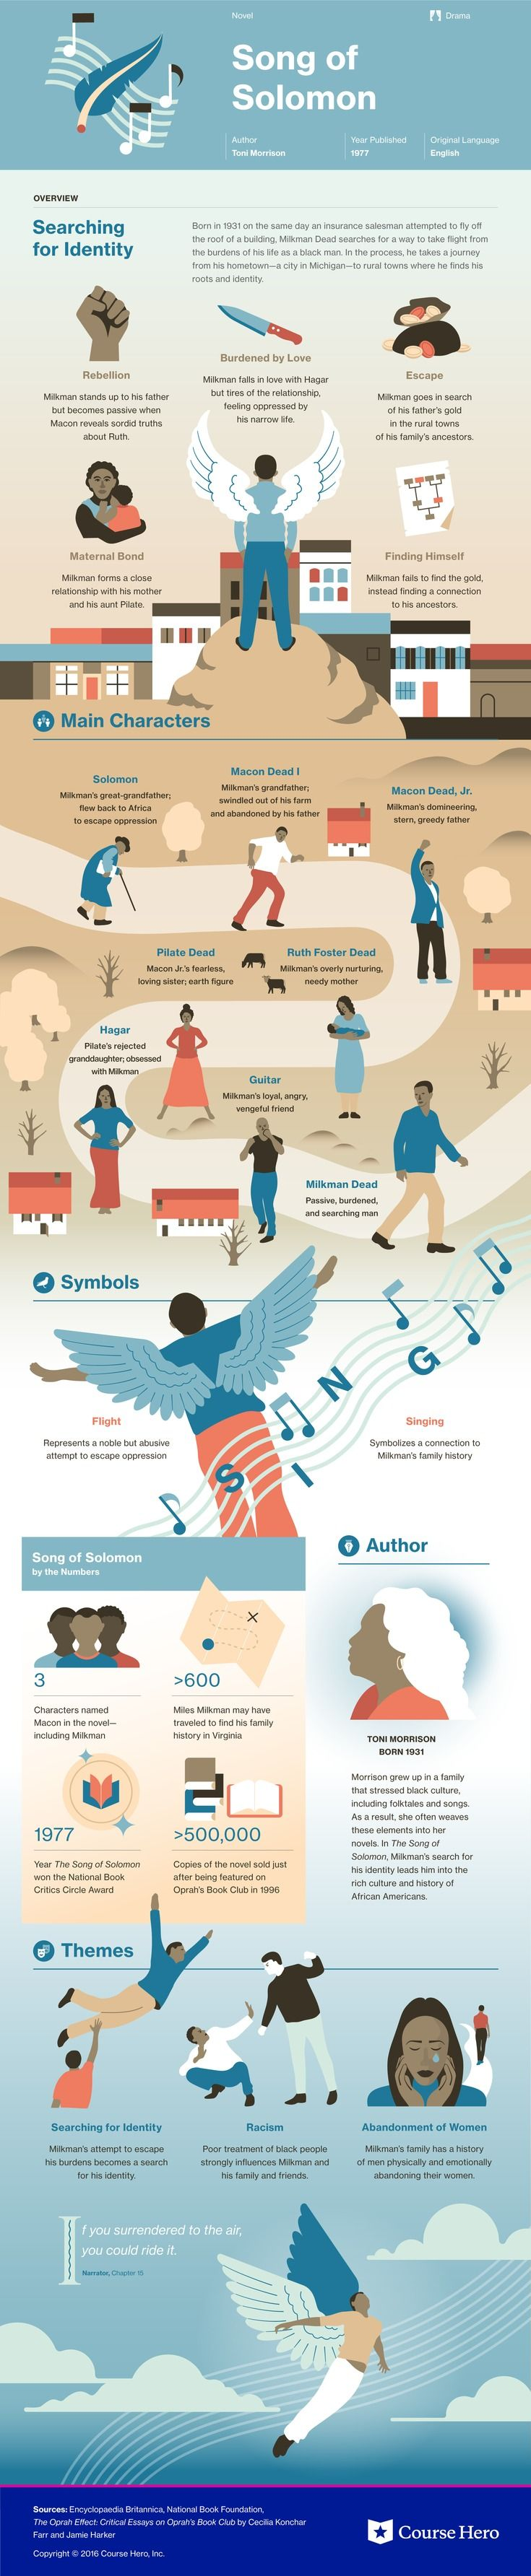 This @CourseHero infographic on Song of Solomon is both visually stunning and informative!